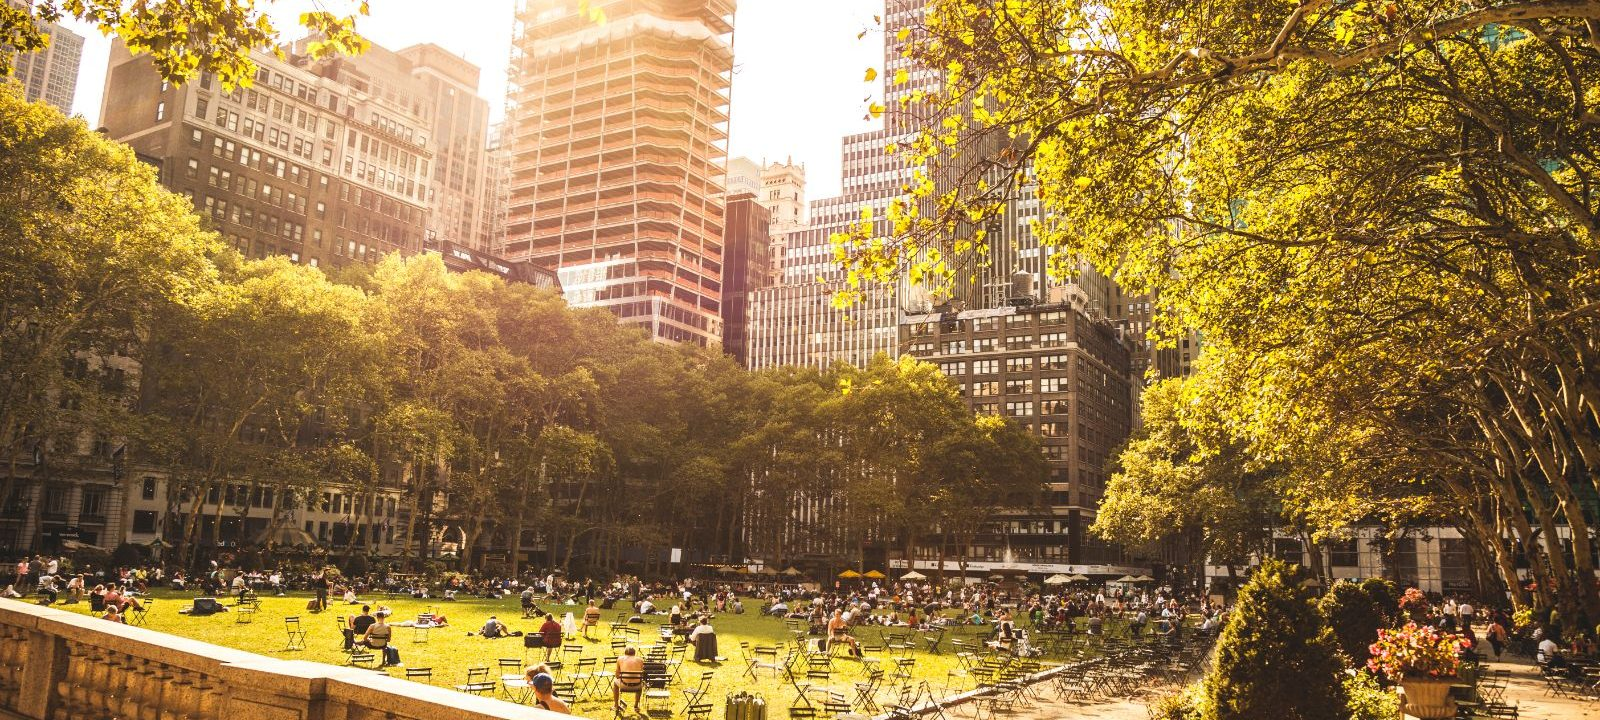 Bryant Park during the daytime in NYC